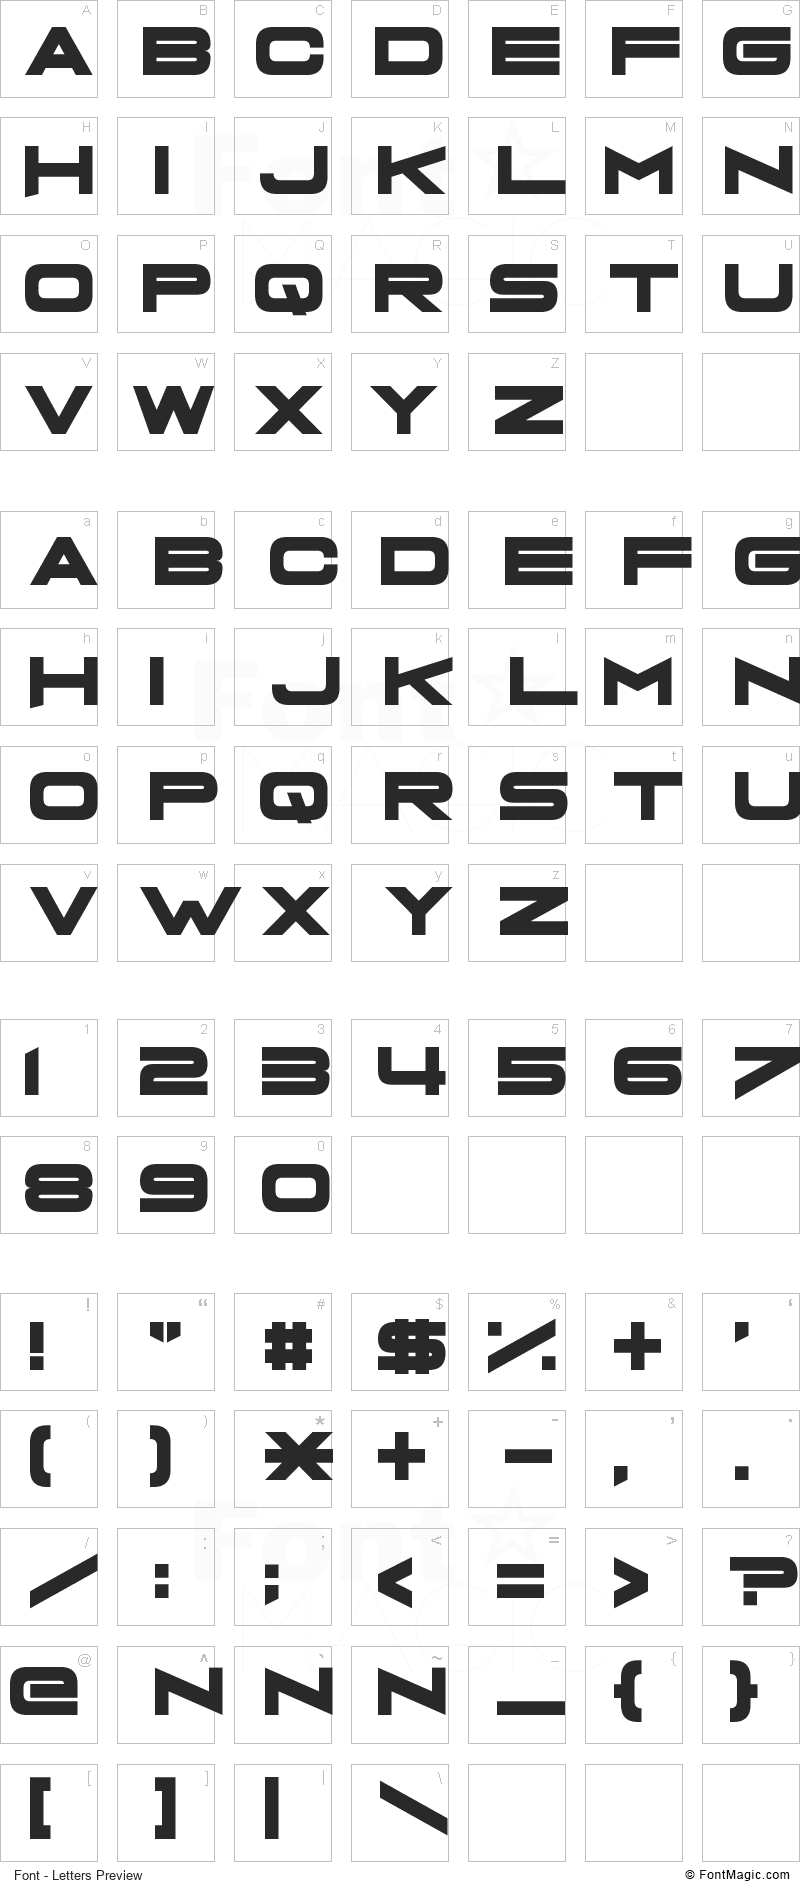 Grandma's Television Font - All Latters Preview Chart